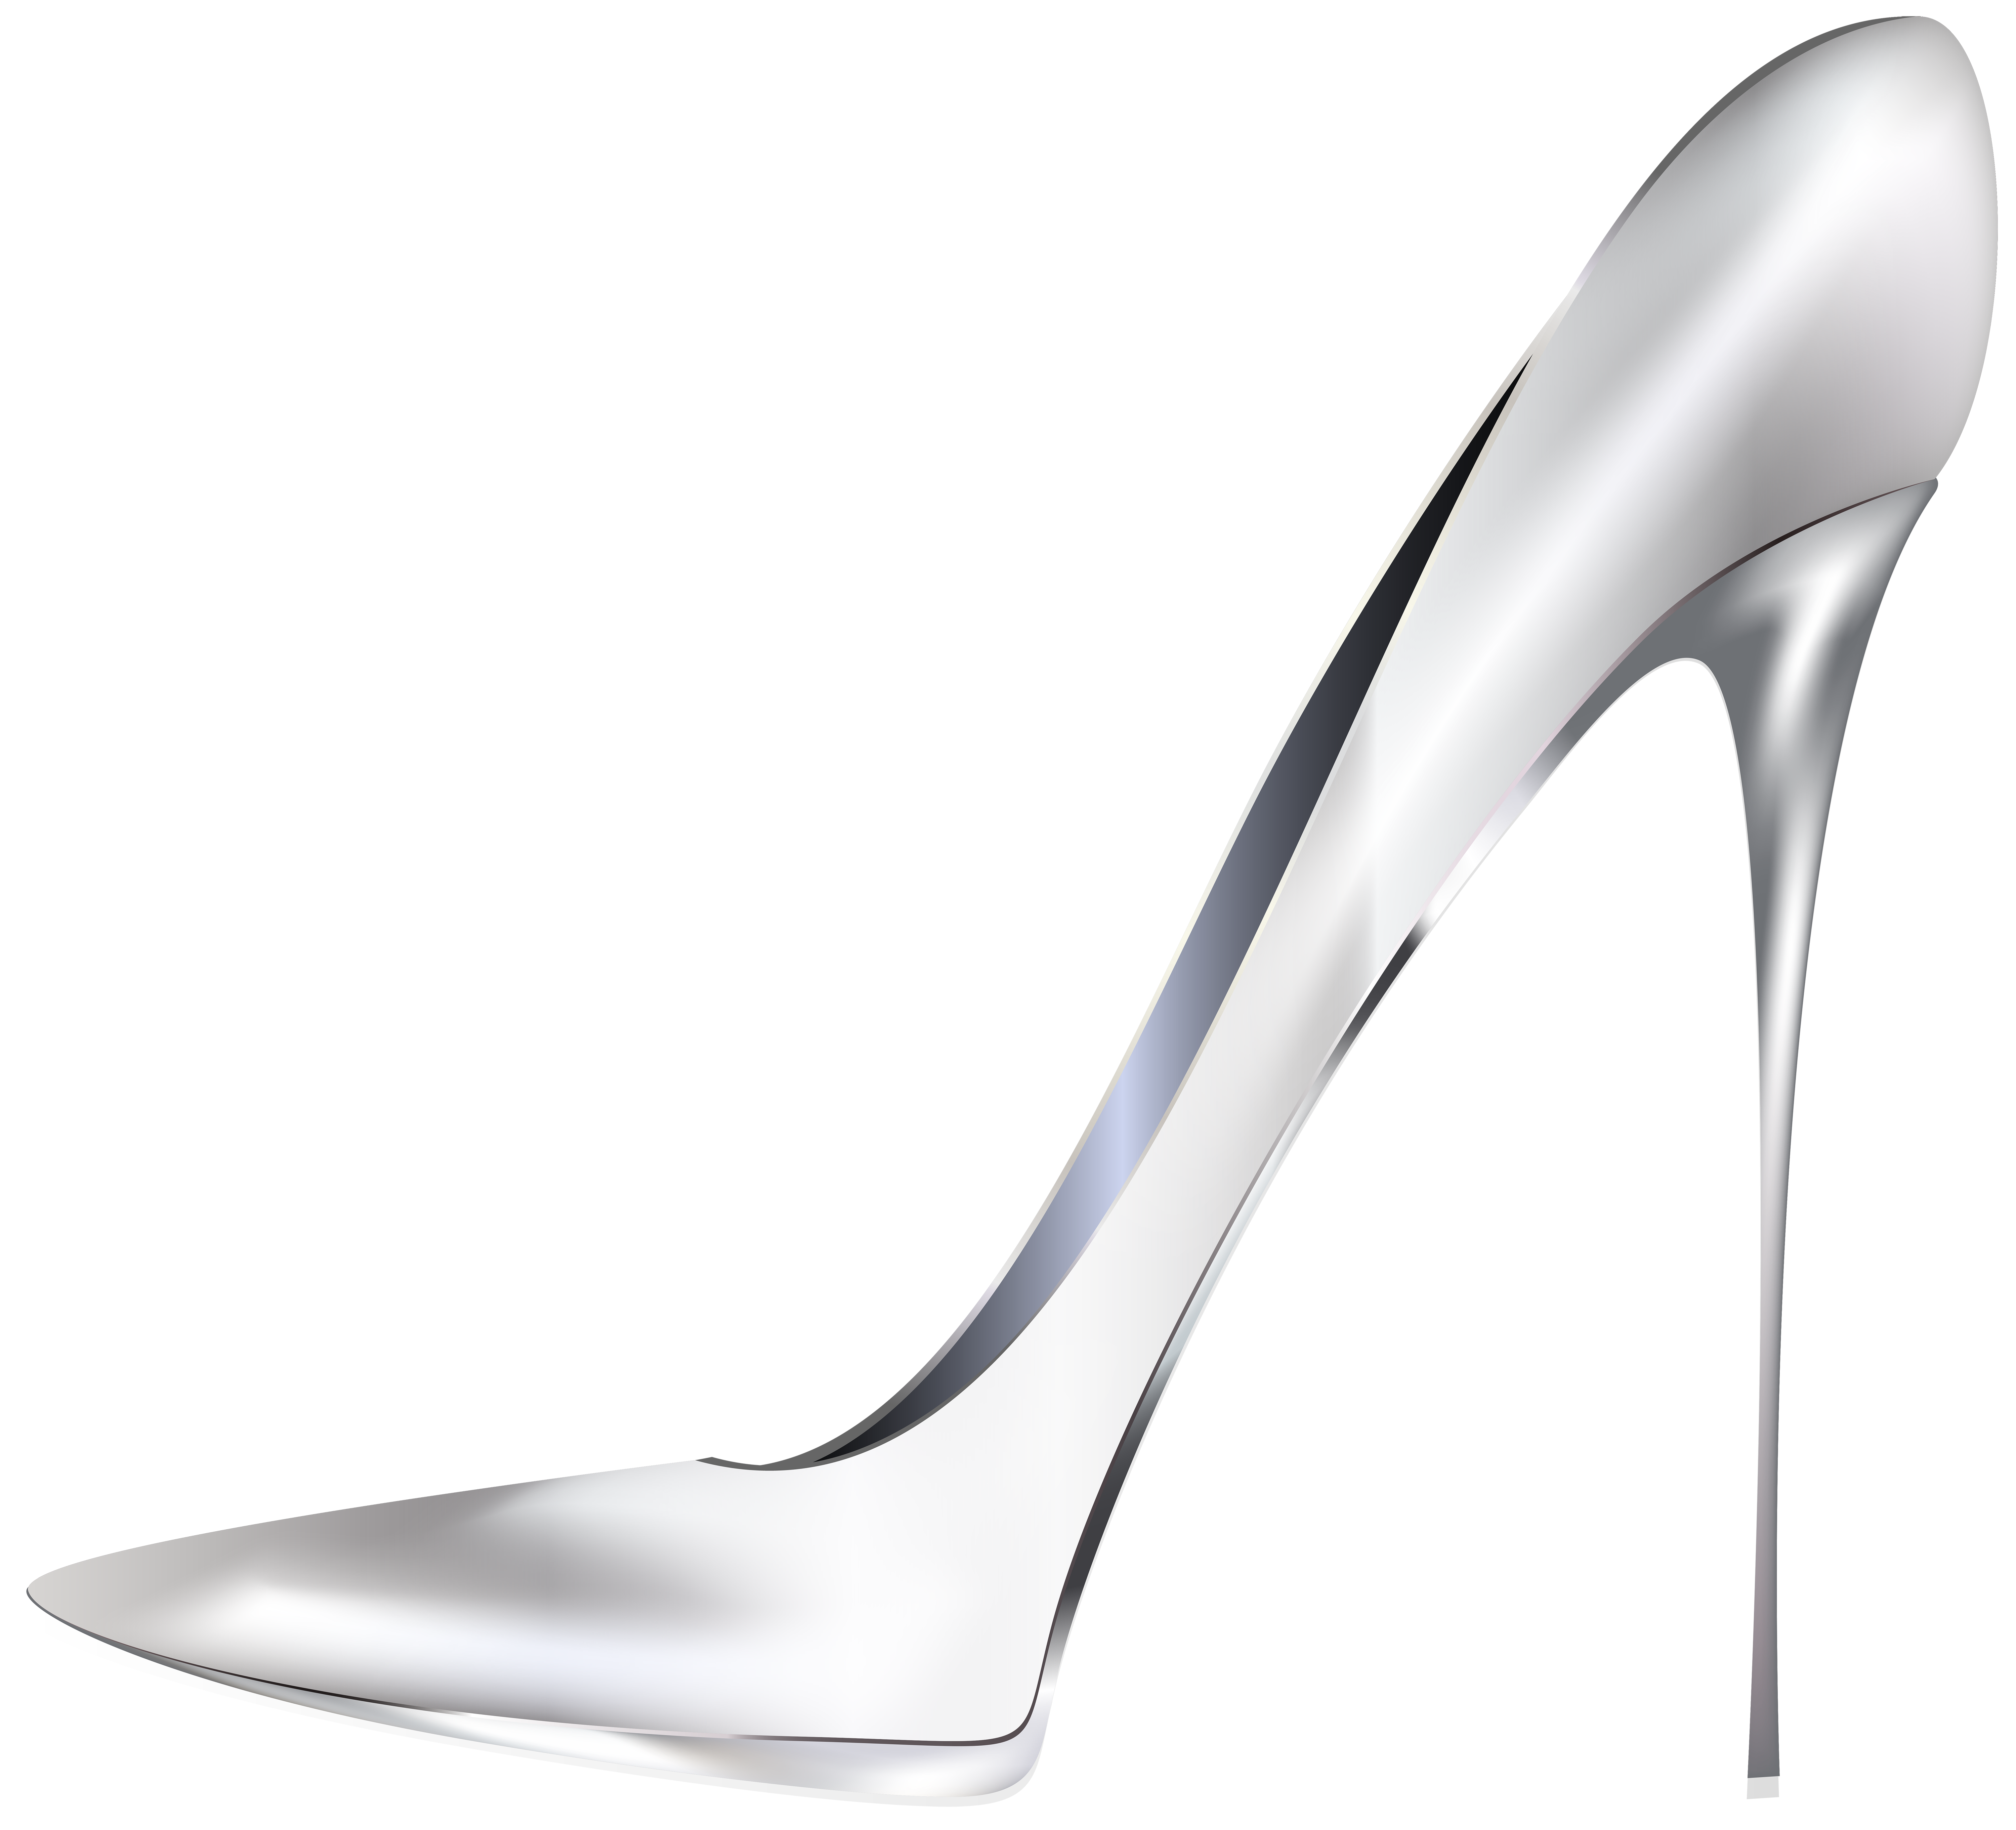 Heels clipart full. White high png clip